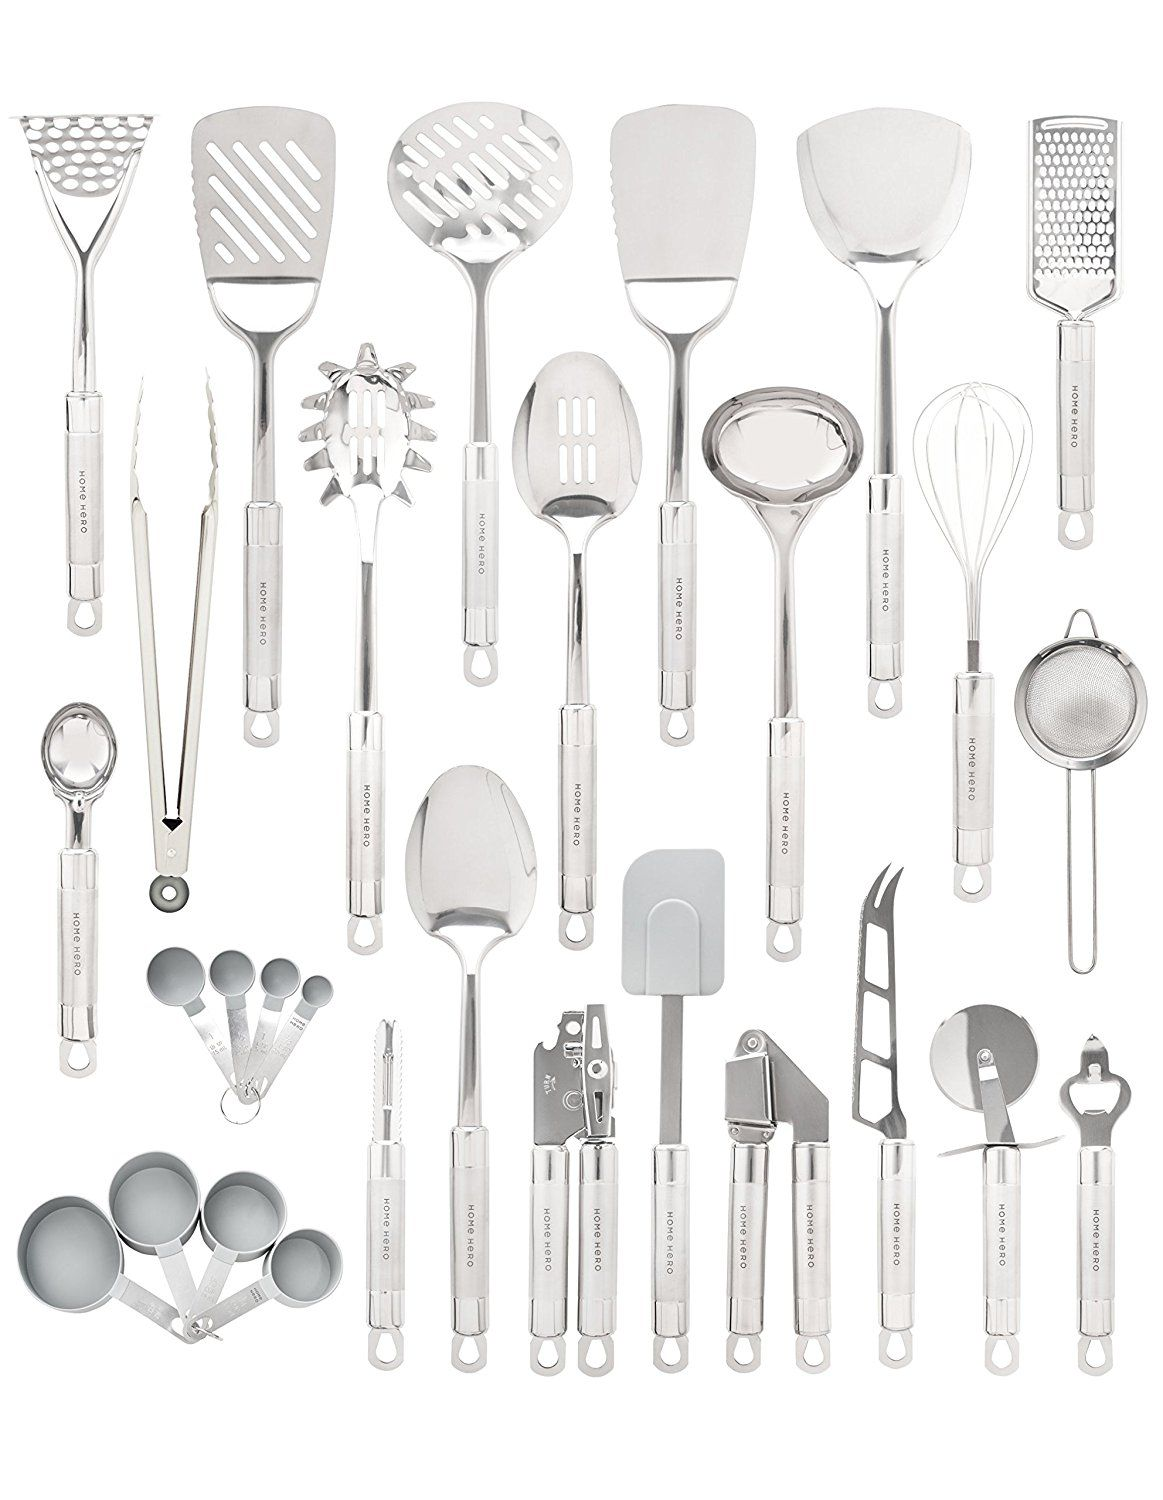 Amazon.com: HomeHero 29-Piece stainless-steel Kitchen ...